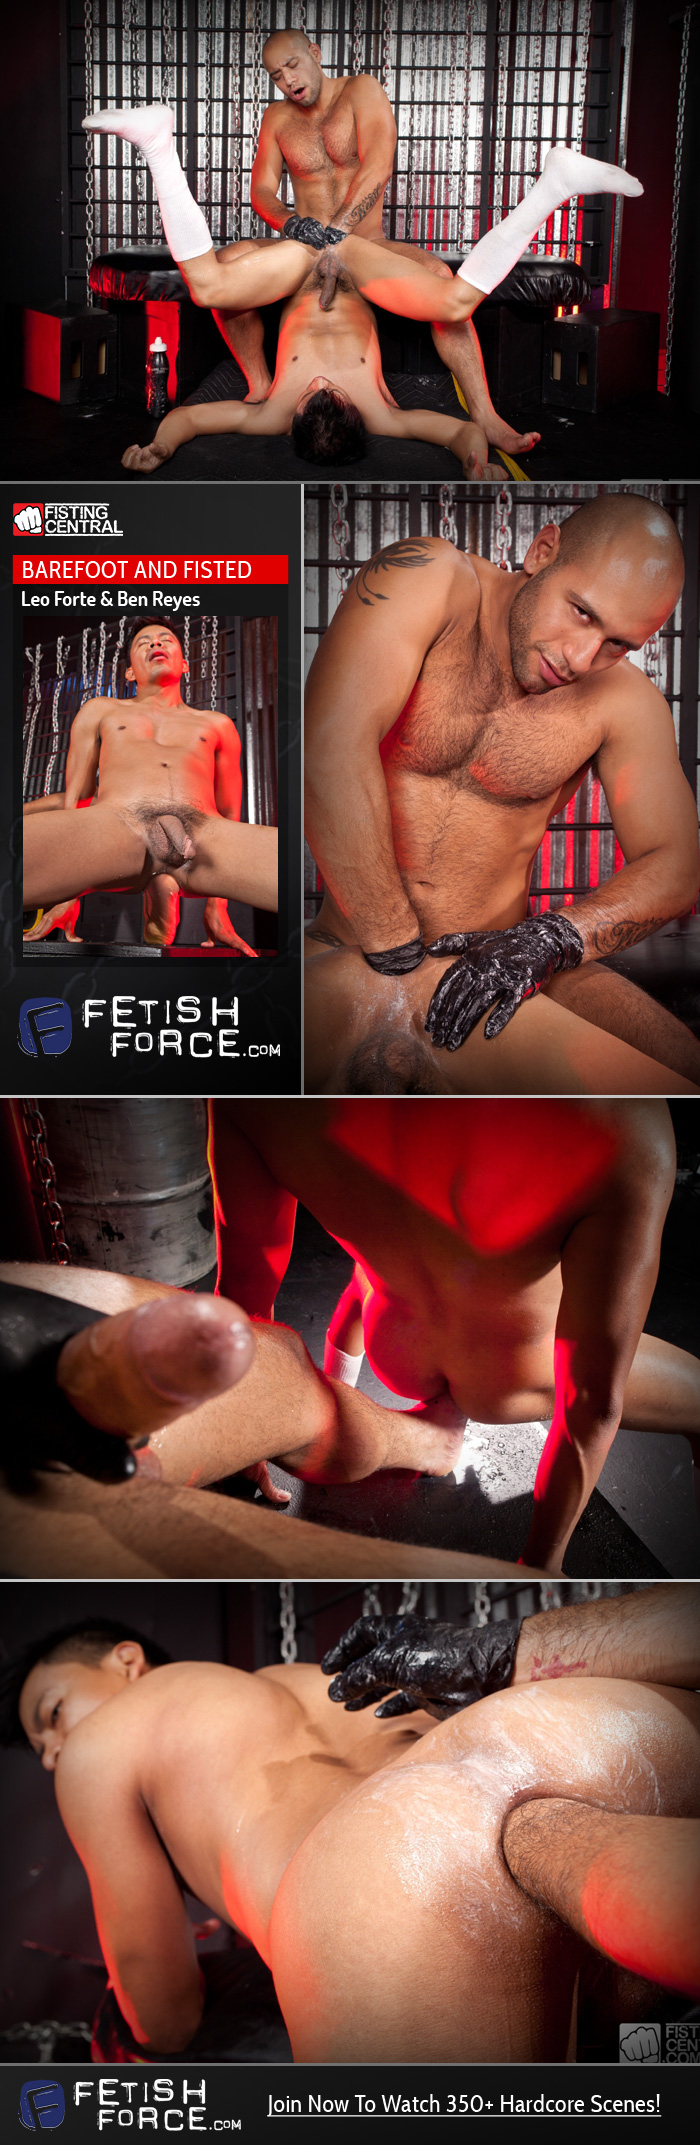 Fetish Force – Leo Forte & Ben Reyes